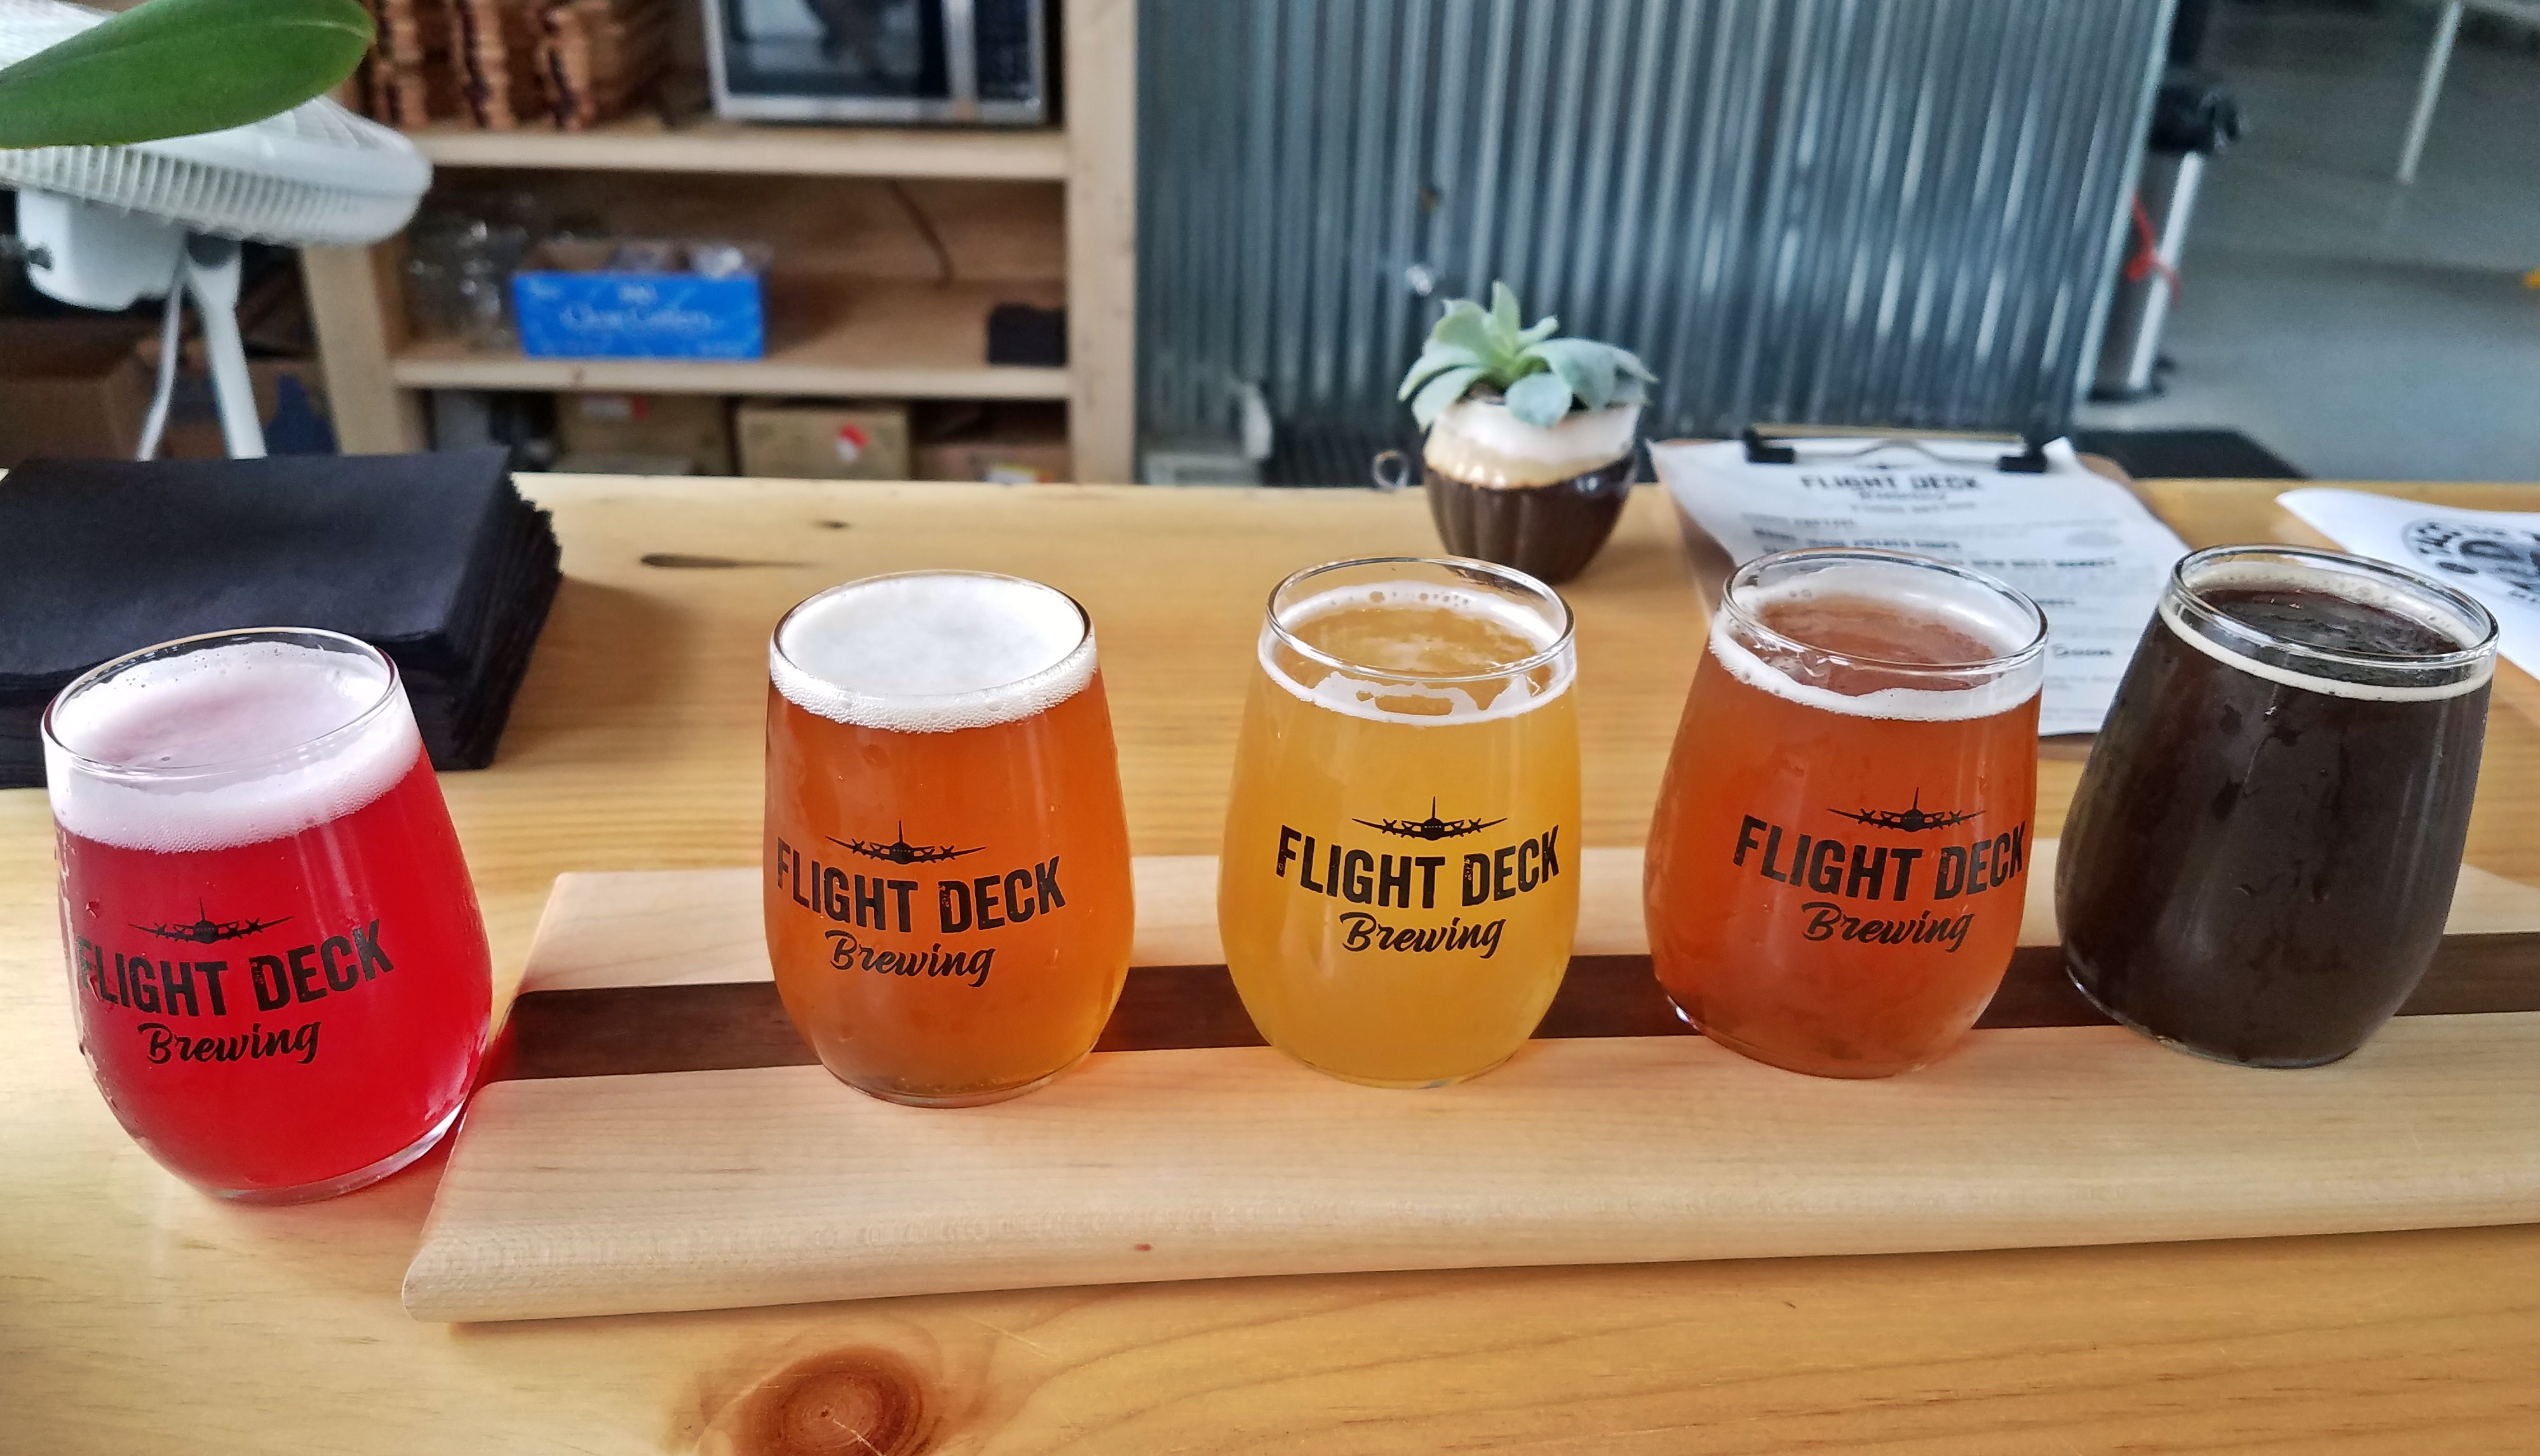 Flight Deck Flight